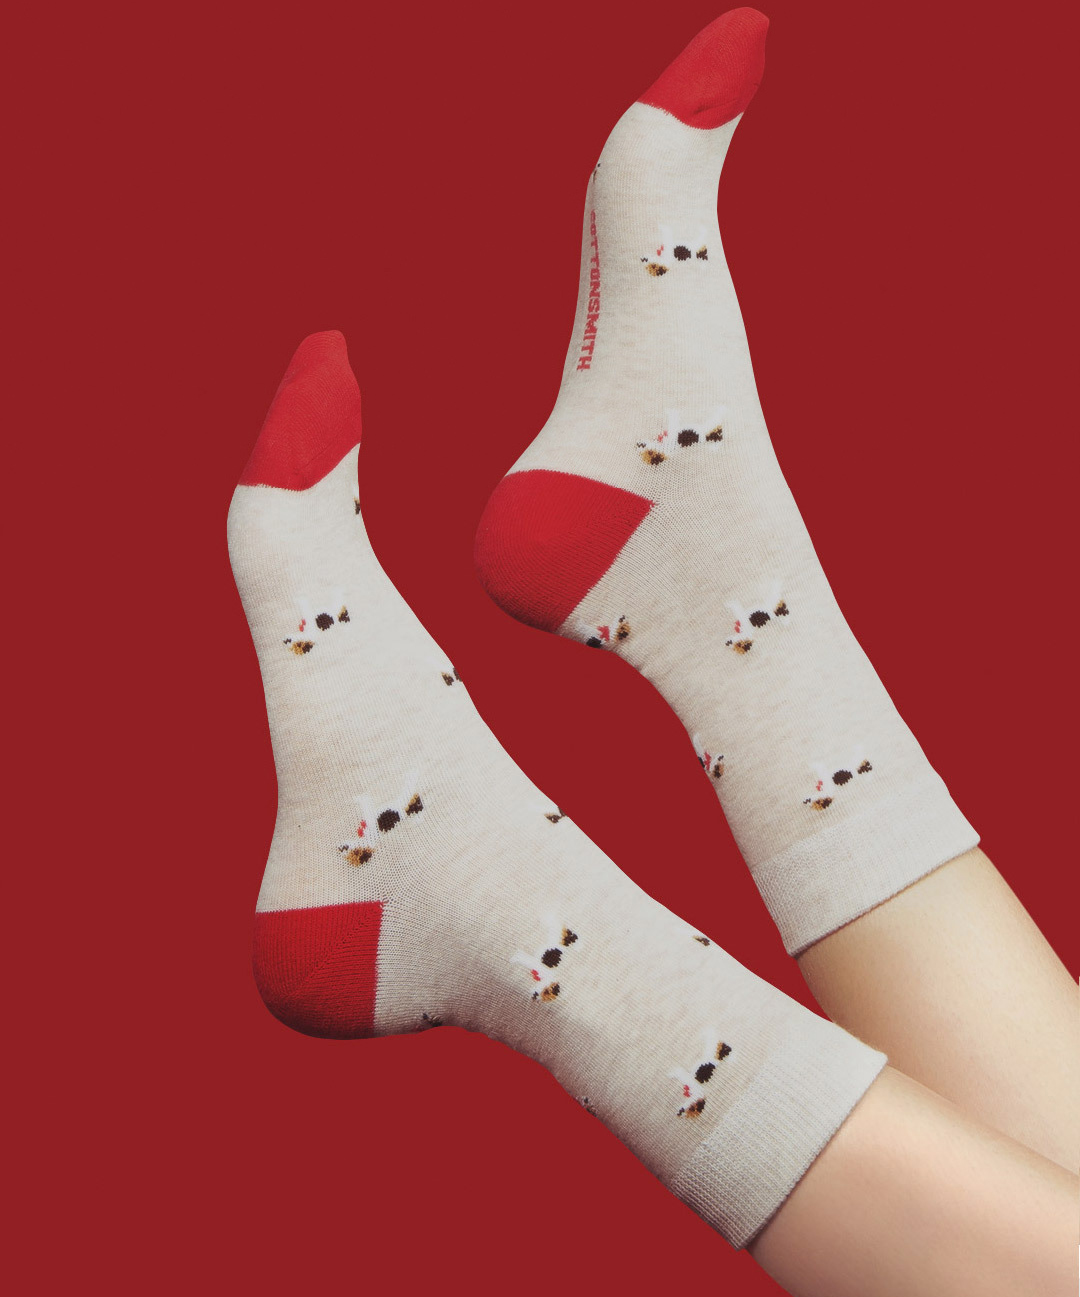 xiaomi-COTTONSMITH-Festival-Long-Socks-3pcs